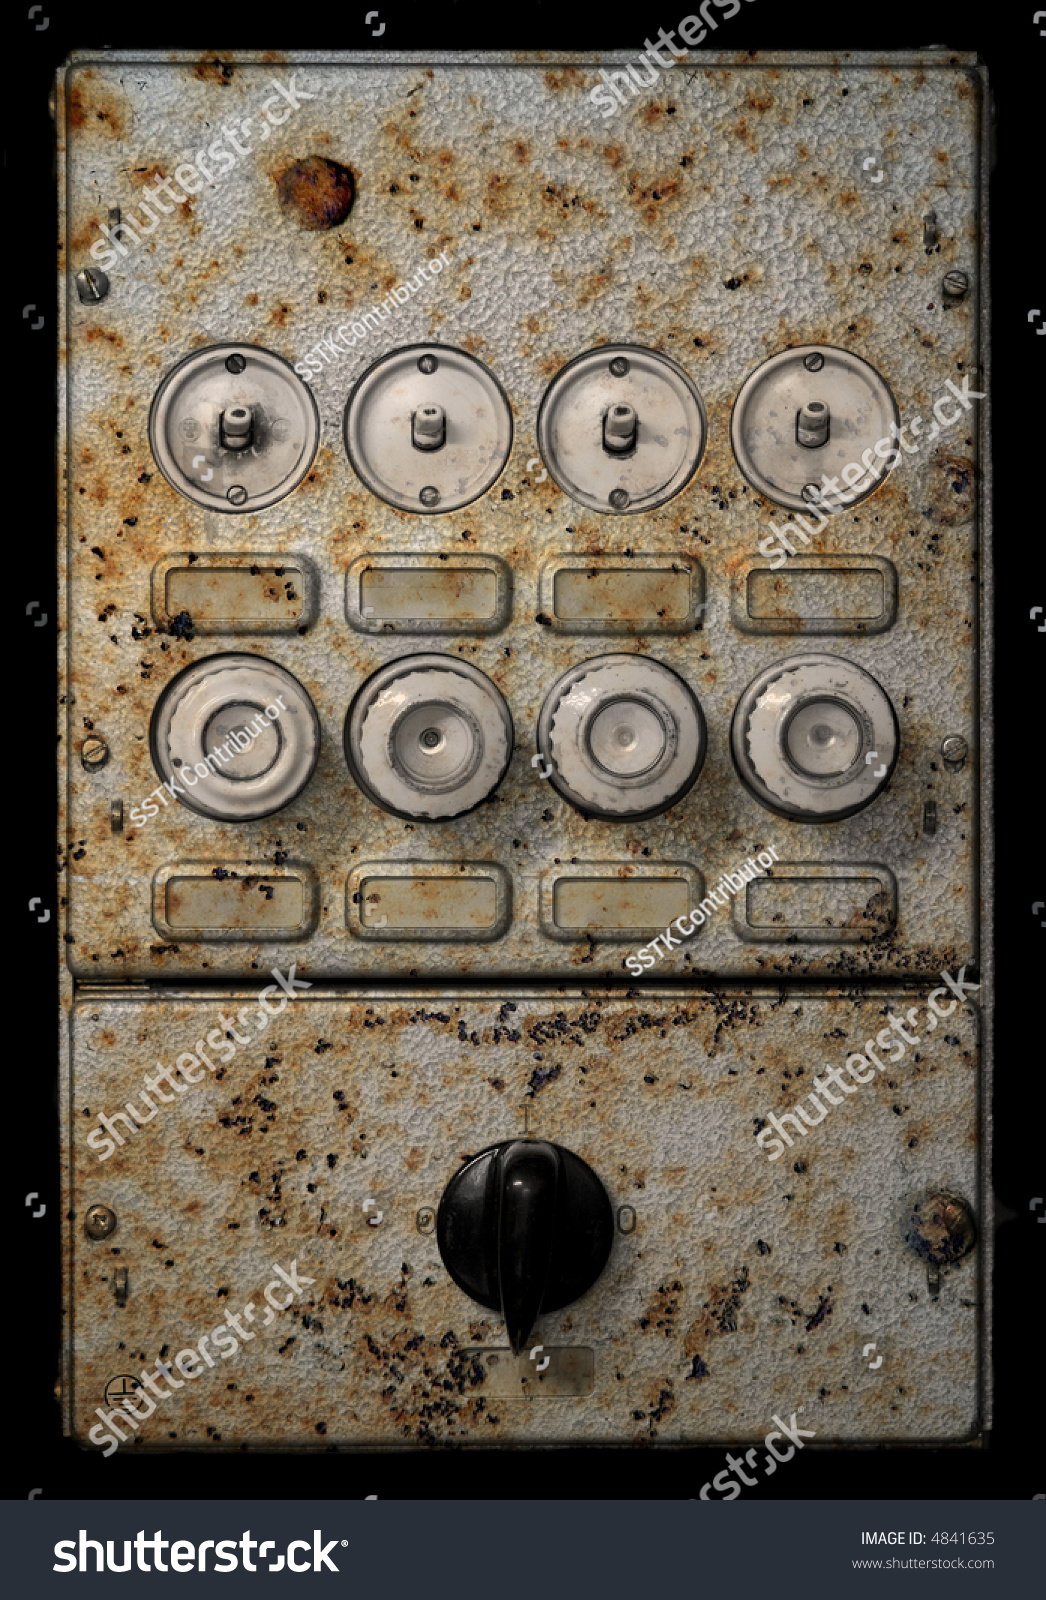 Old Grungy Fuse Box Stock Photo Edit Now 4841635 Shutterstock Help